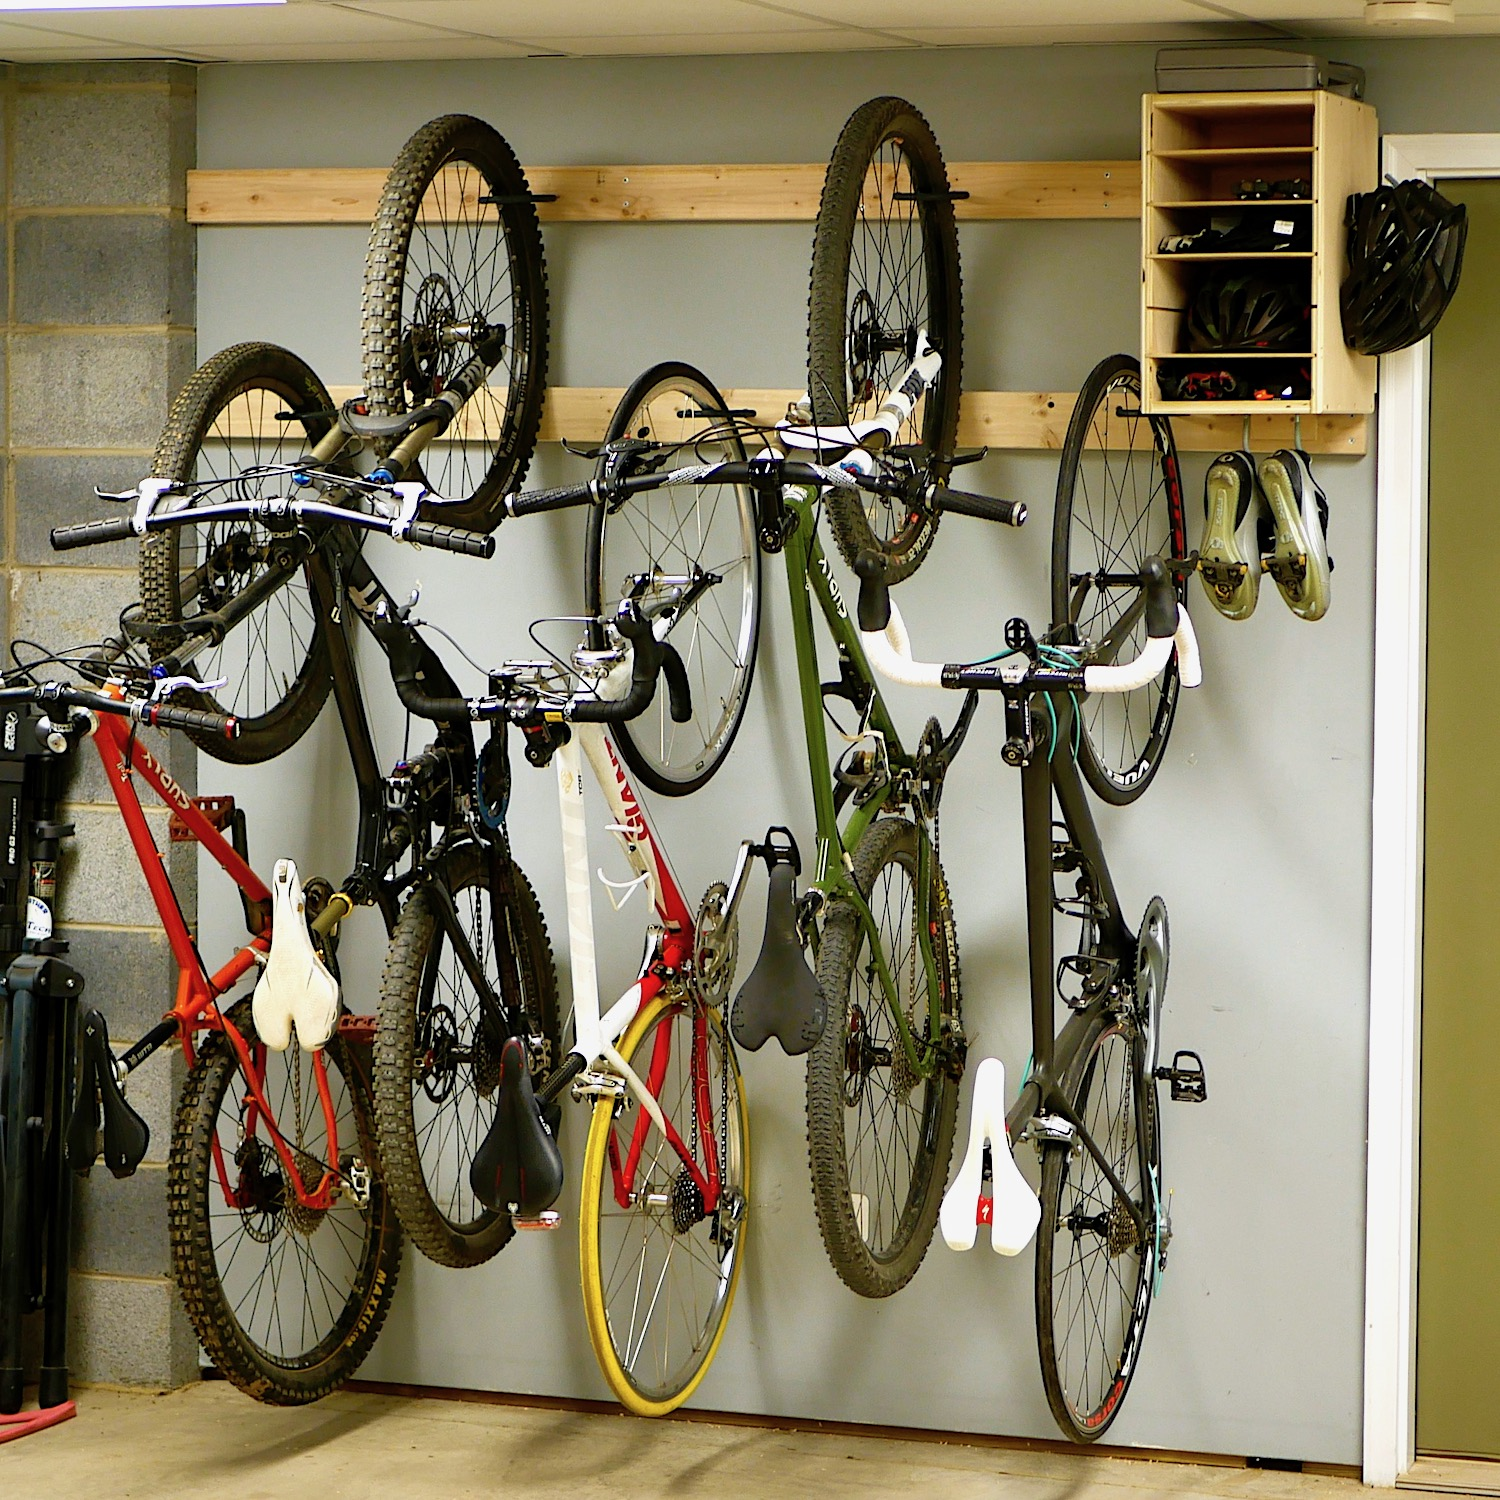 Bike Rack For The Garage How To Make A Diy Bike Rack For 20 Bike Storage Stand Cabinet